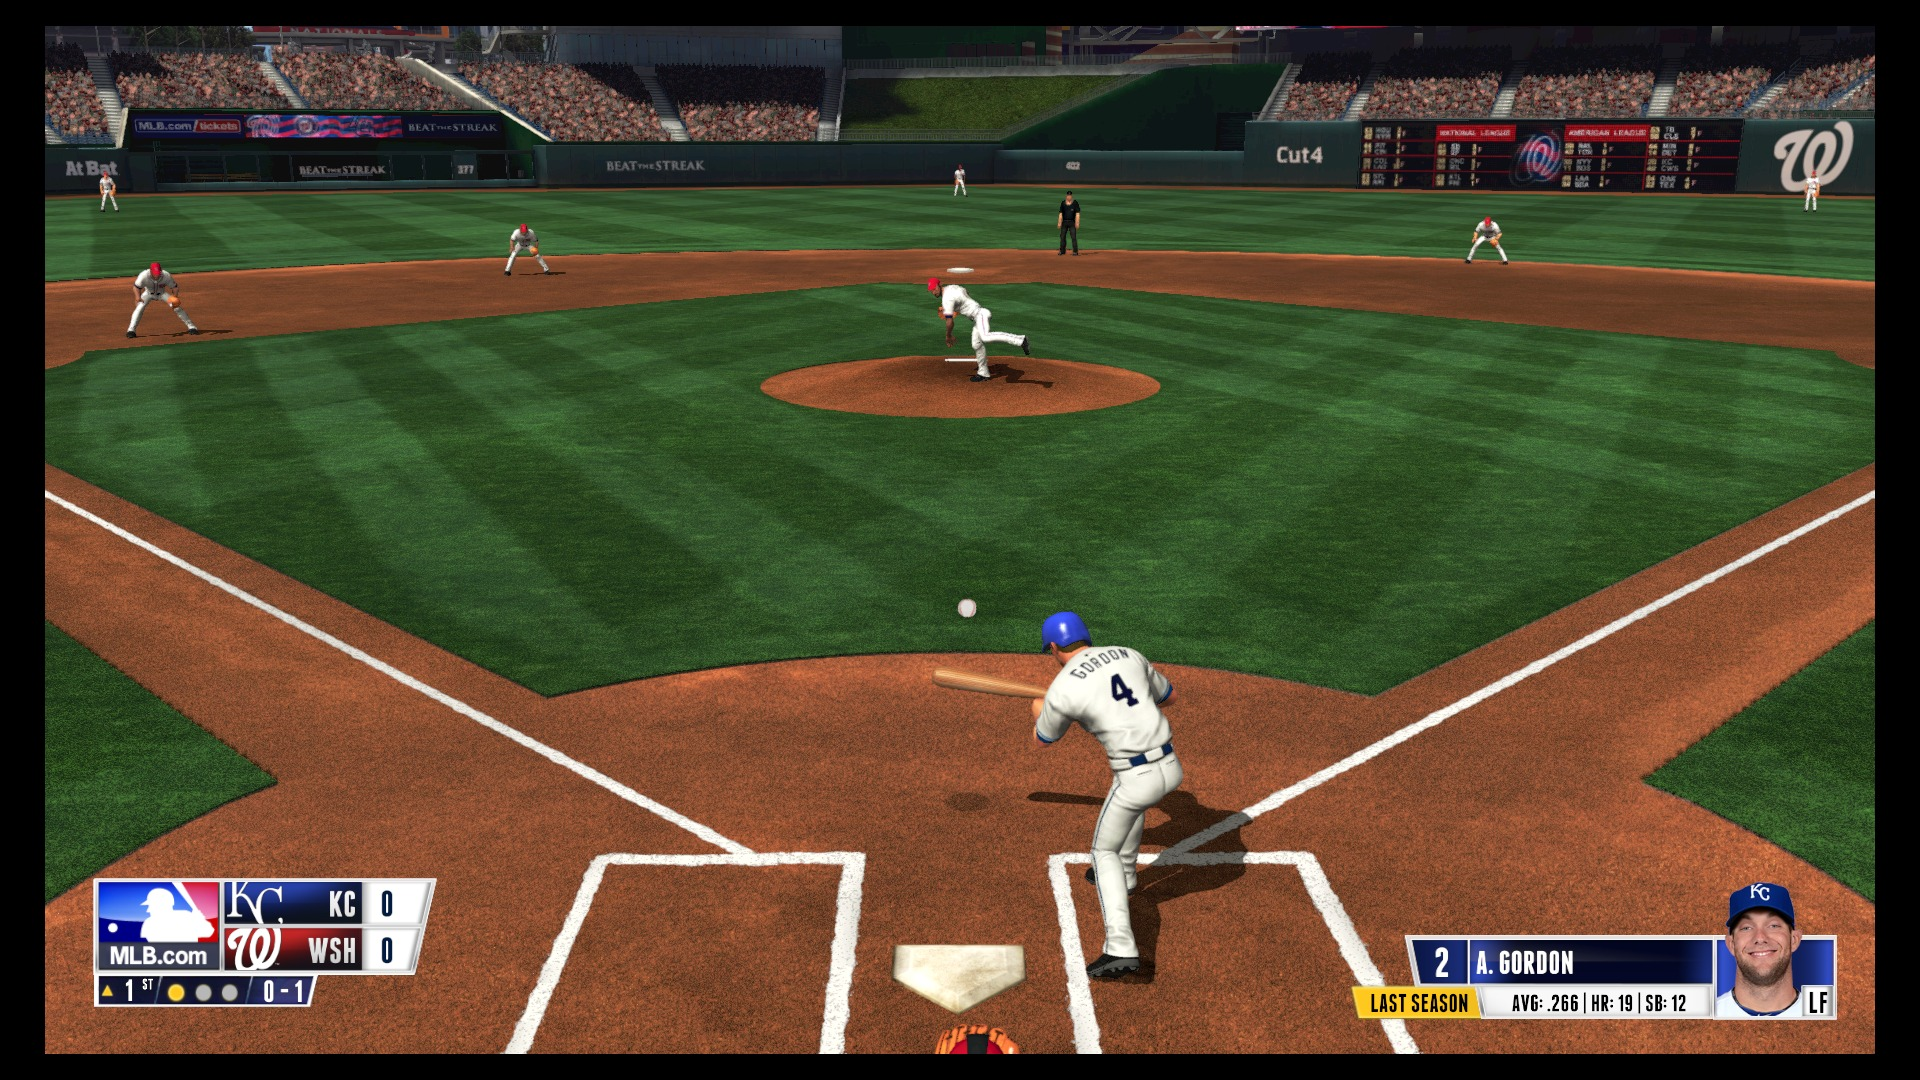 R.B.I. Baseball 15 on Steam